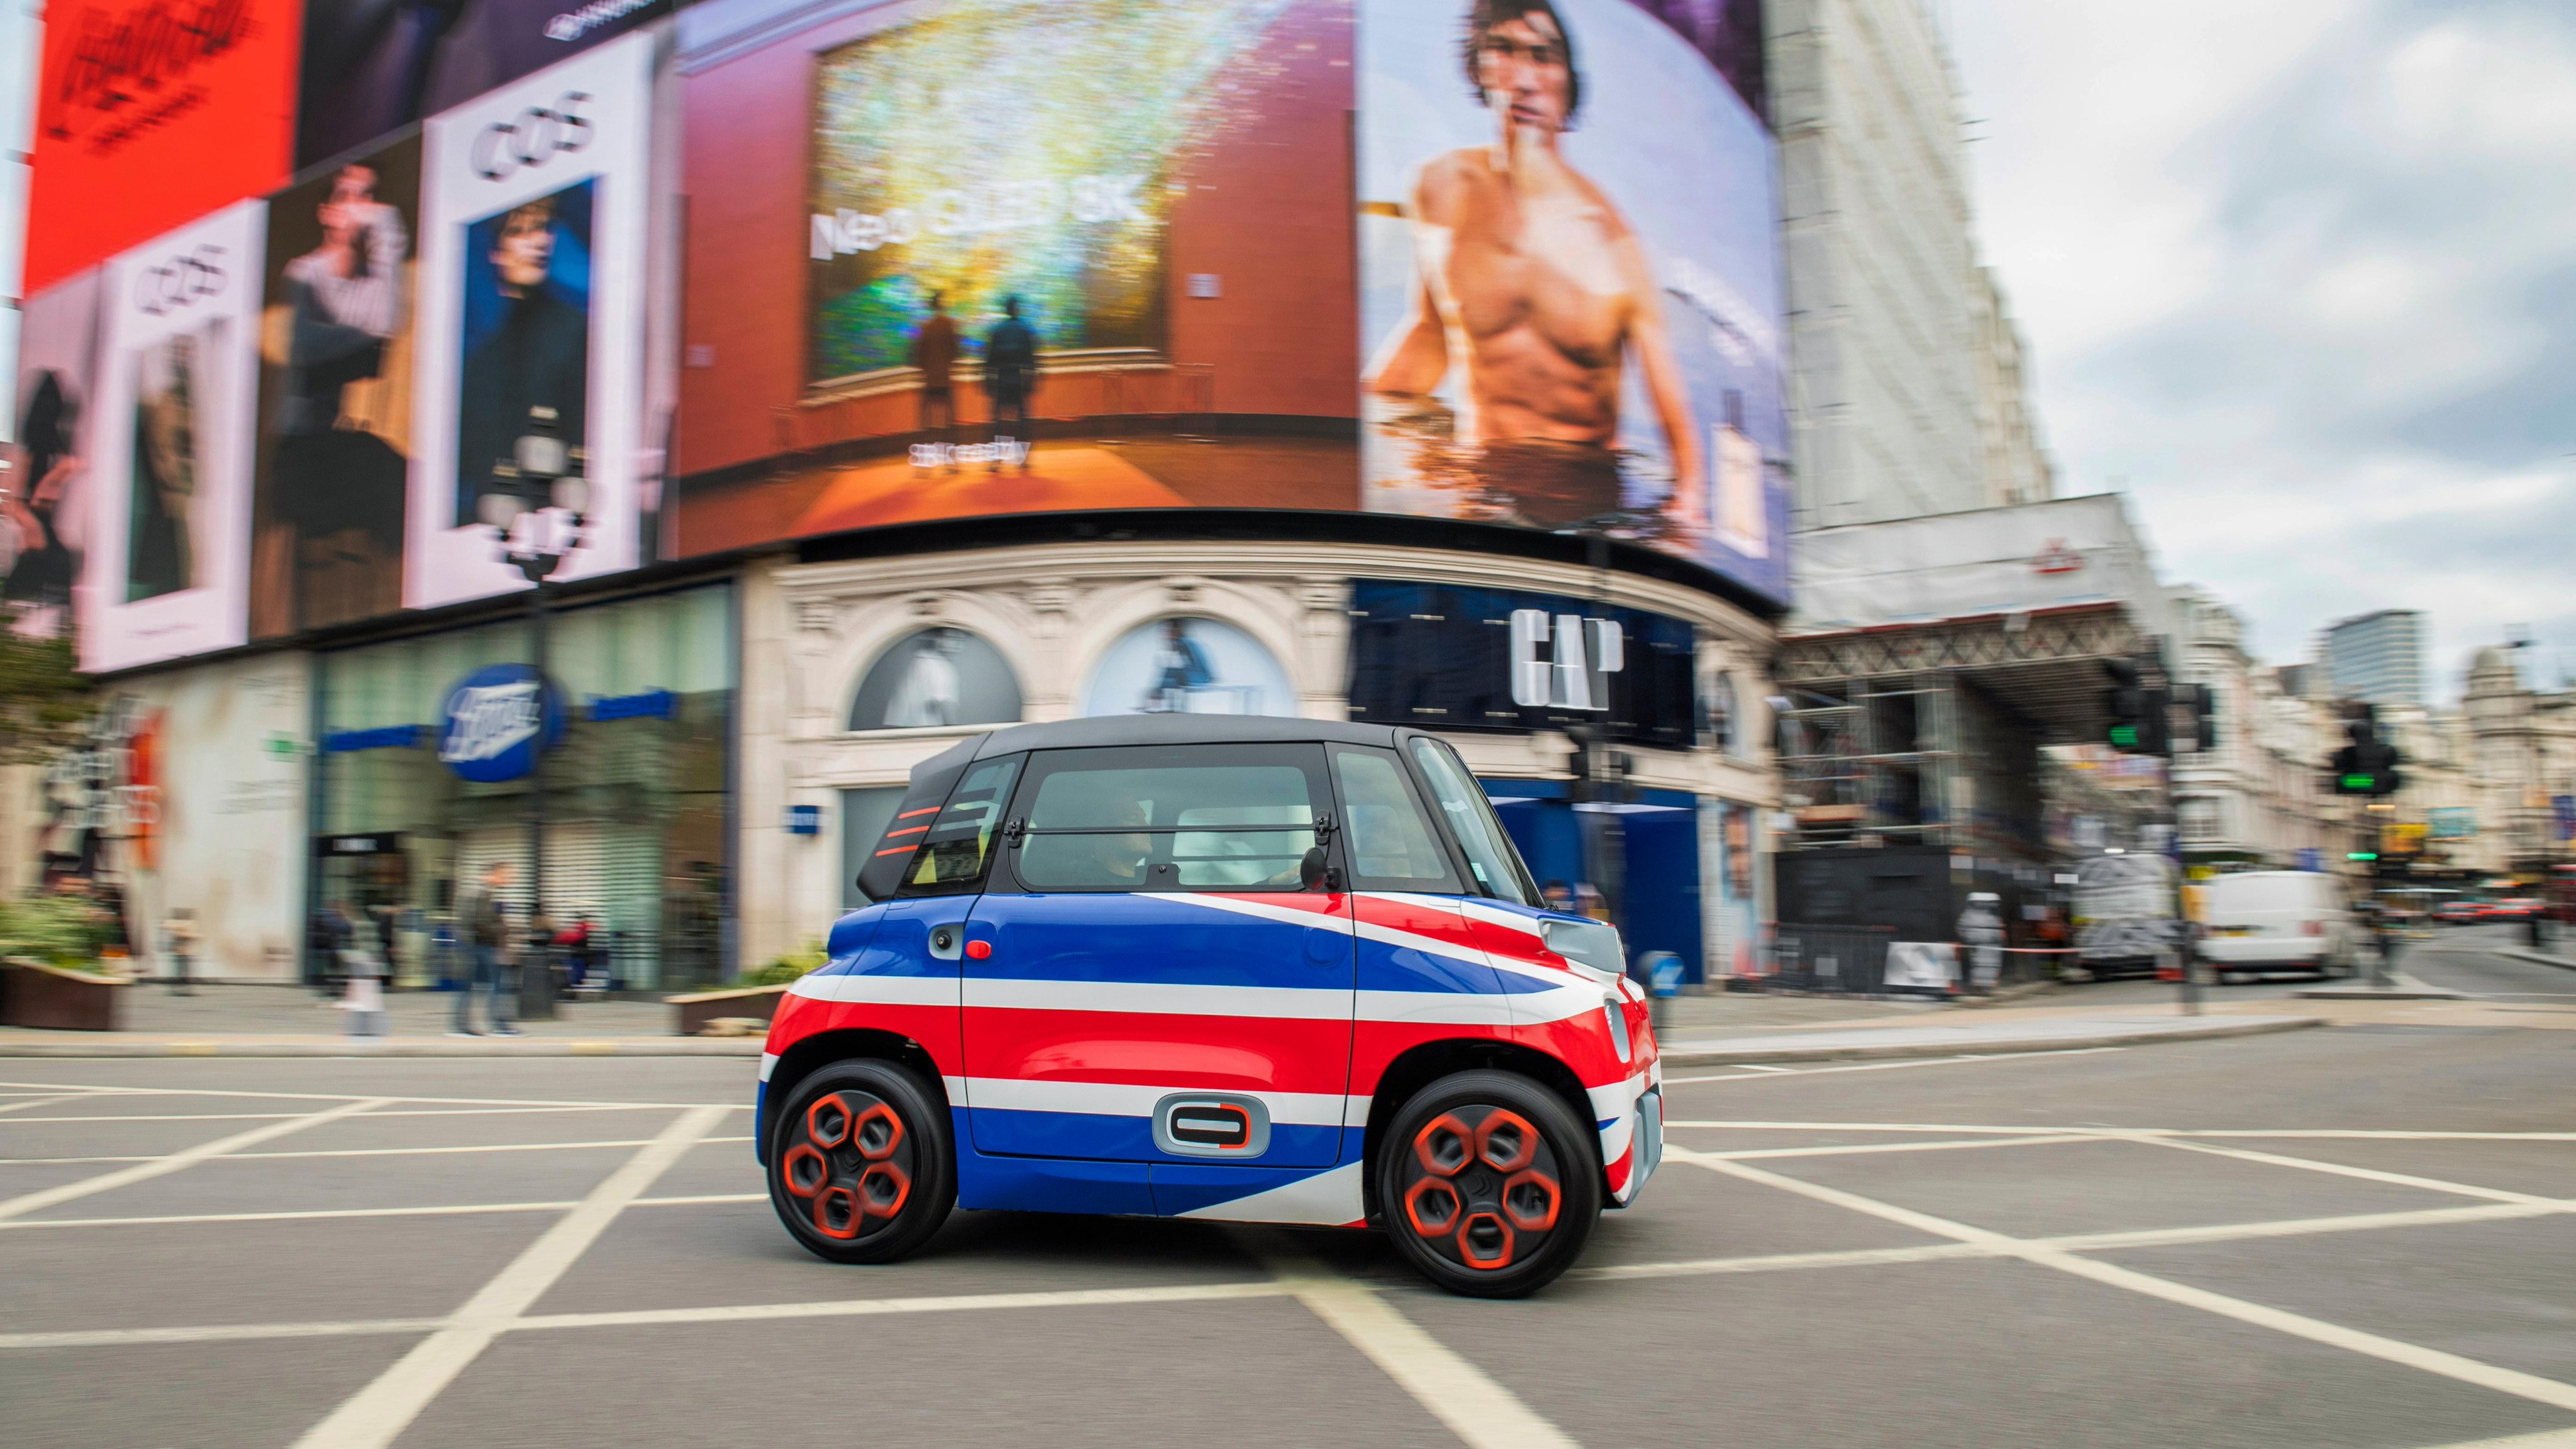 Citroen to sell tiny, 28mph electric car in UK for around £5,000   ITV News